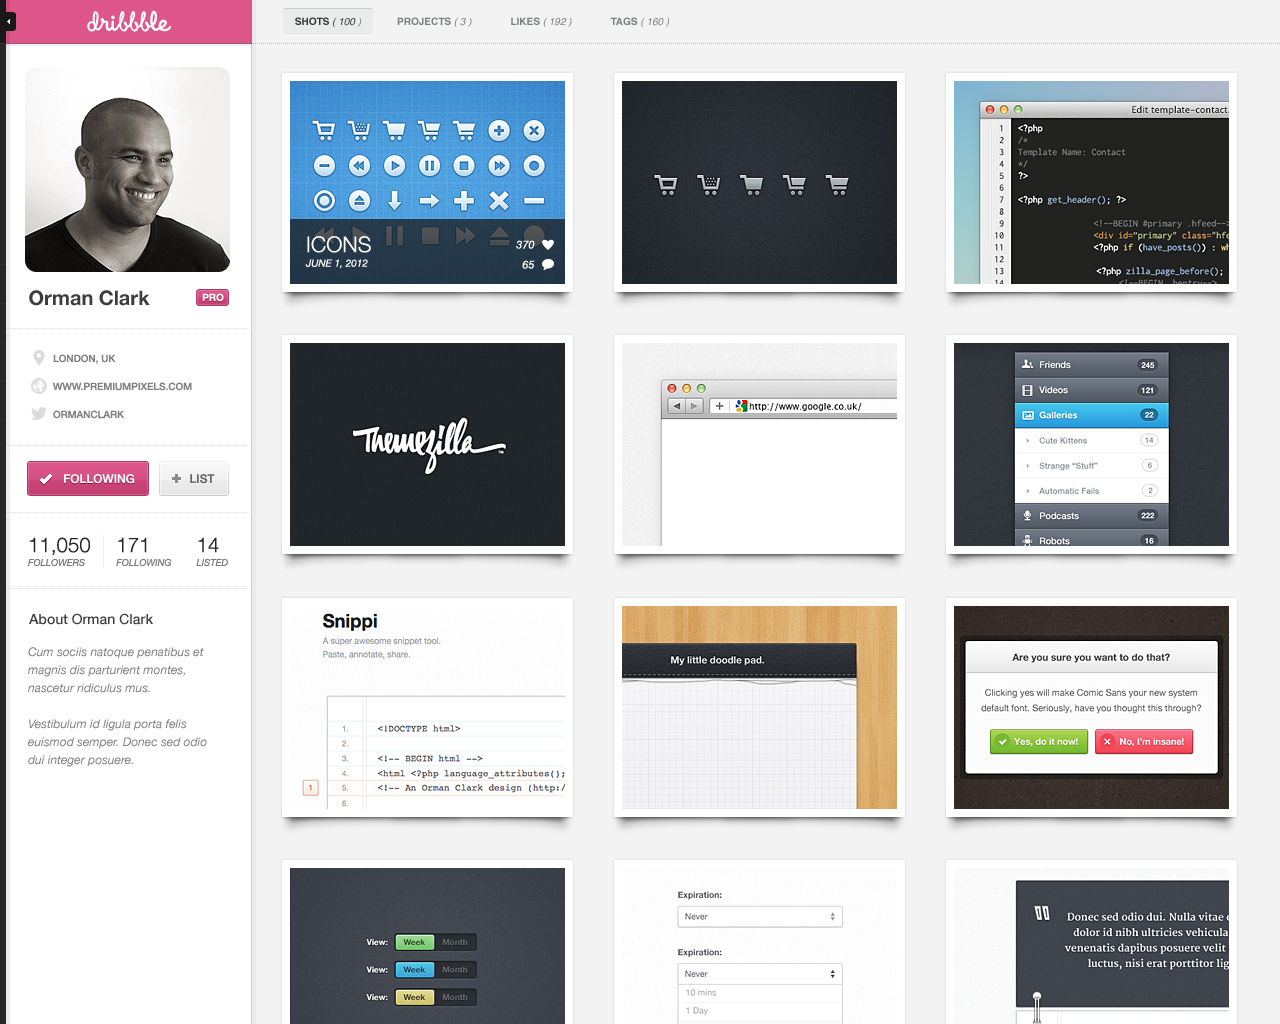 Dribbble profile fullview